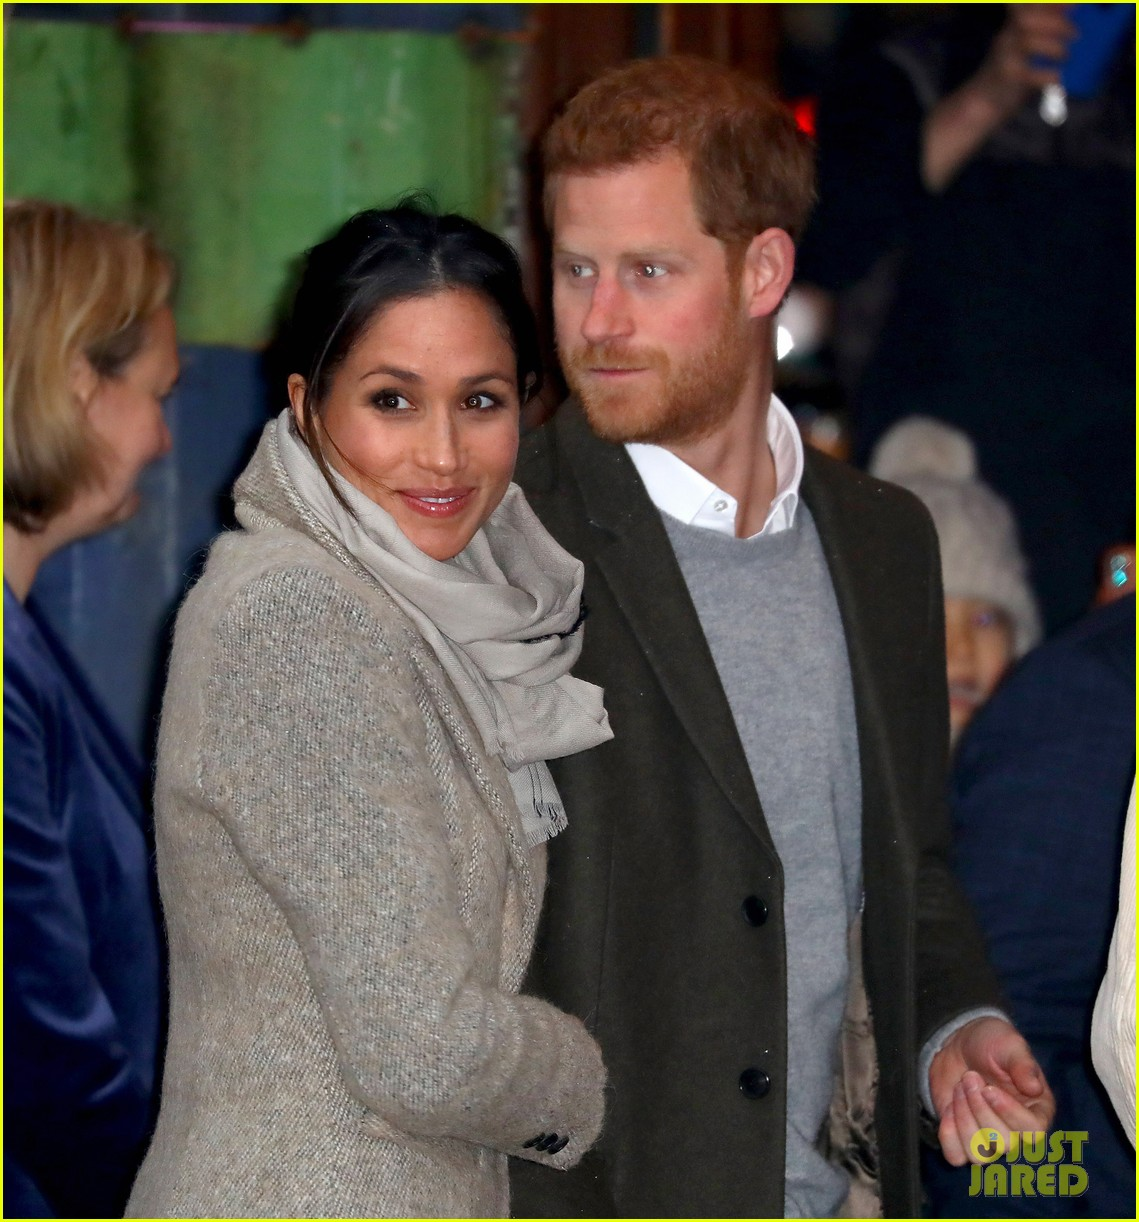 Meghan Markle's Latest Outfit Is Already Selling Out, But